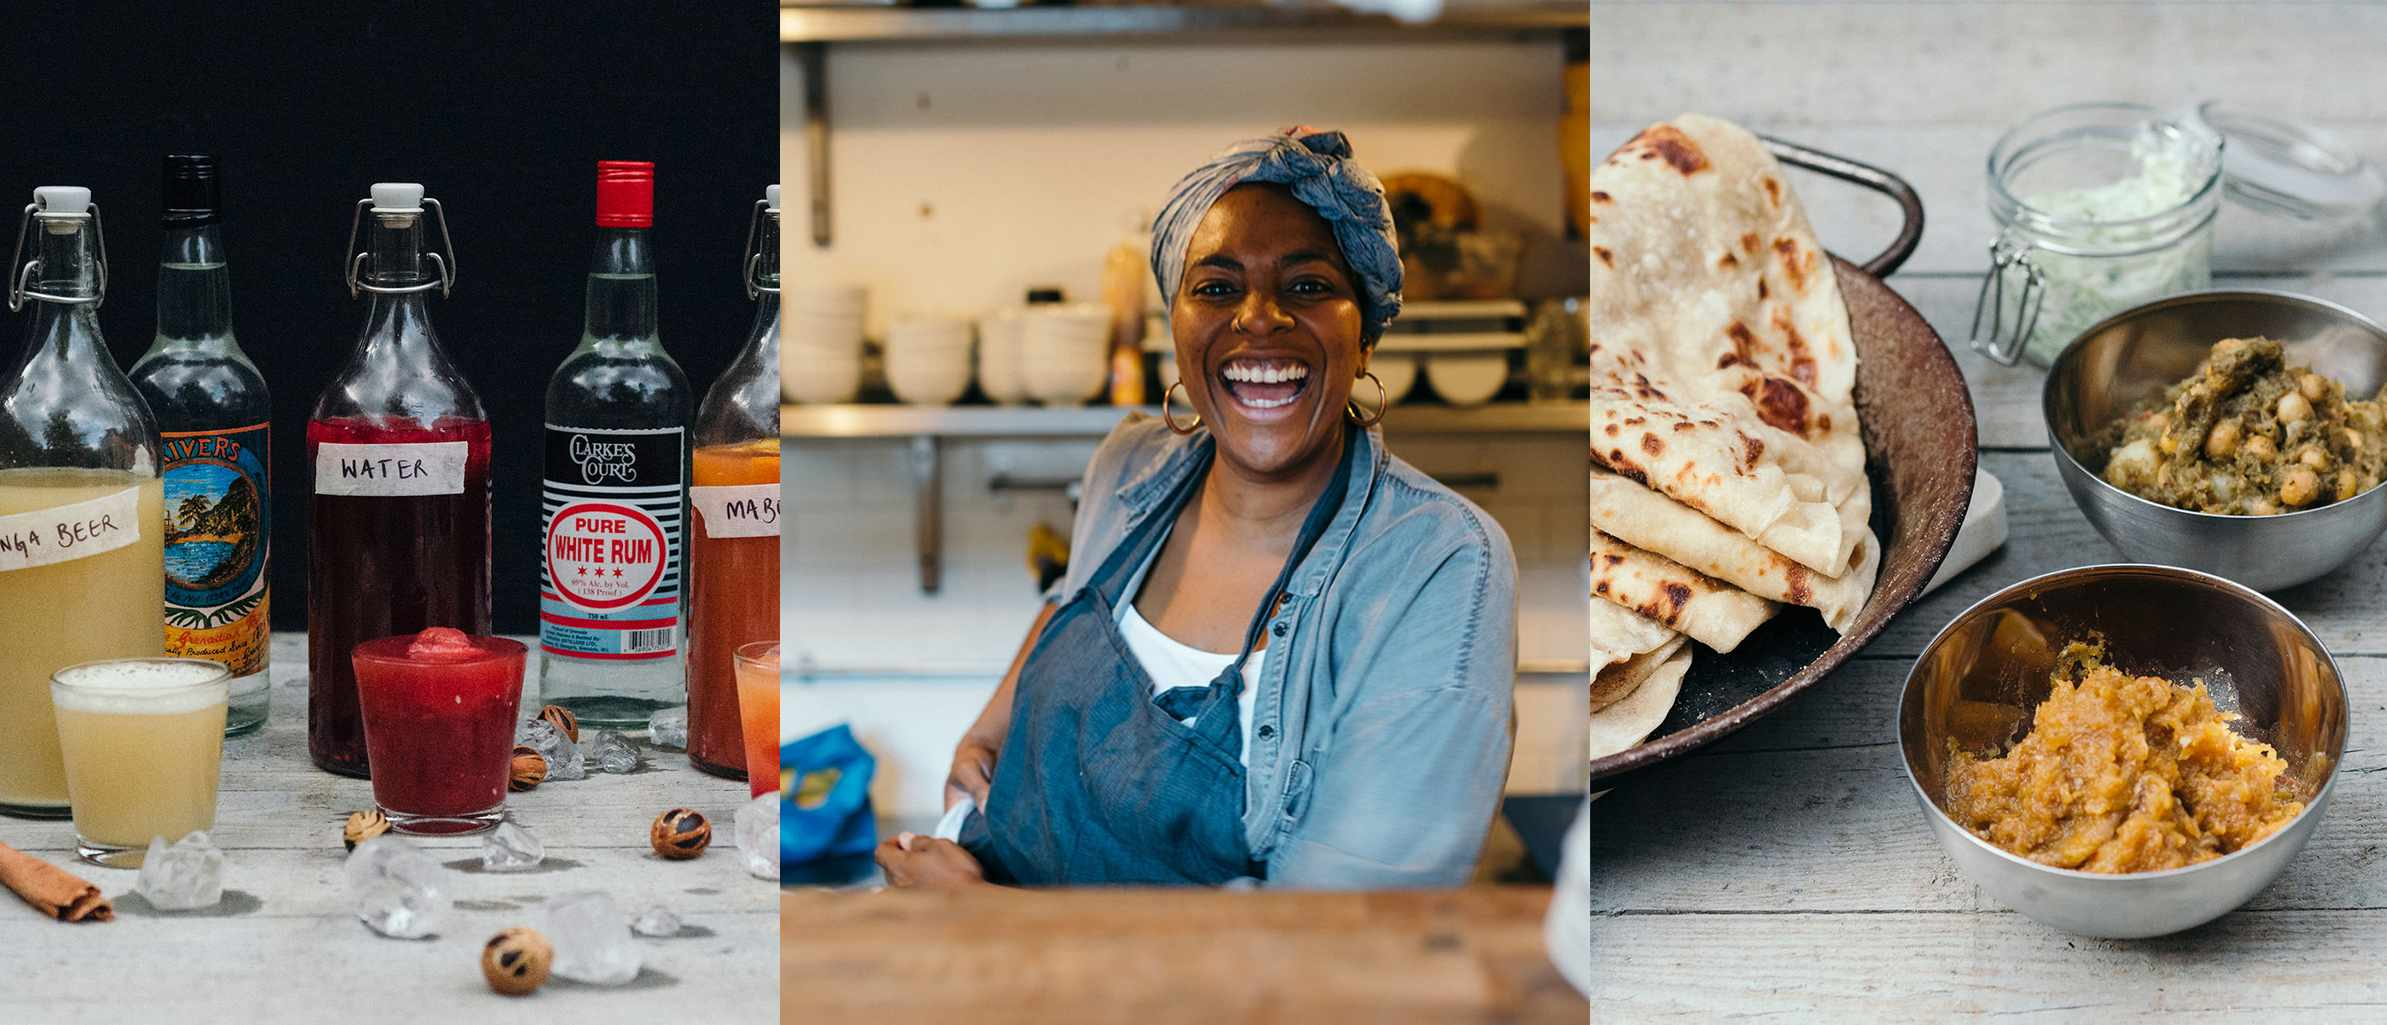 Three images. The first is of a selection of rum punches, the second is of Marie Mitchell and the third is a roti with a couple of small bowls filled with curries by the side